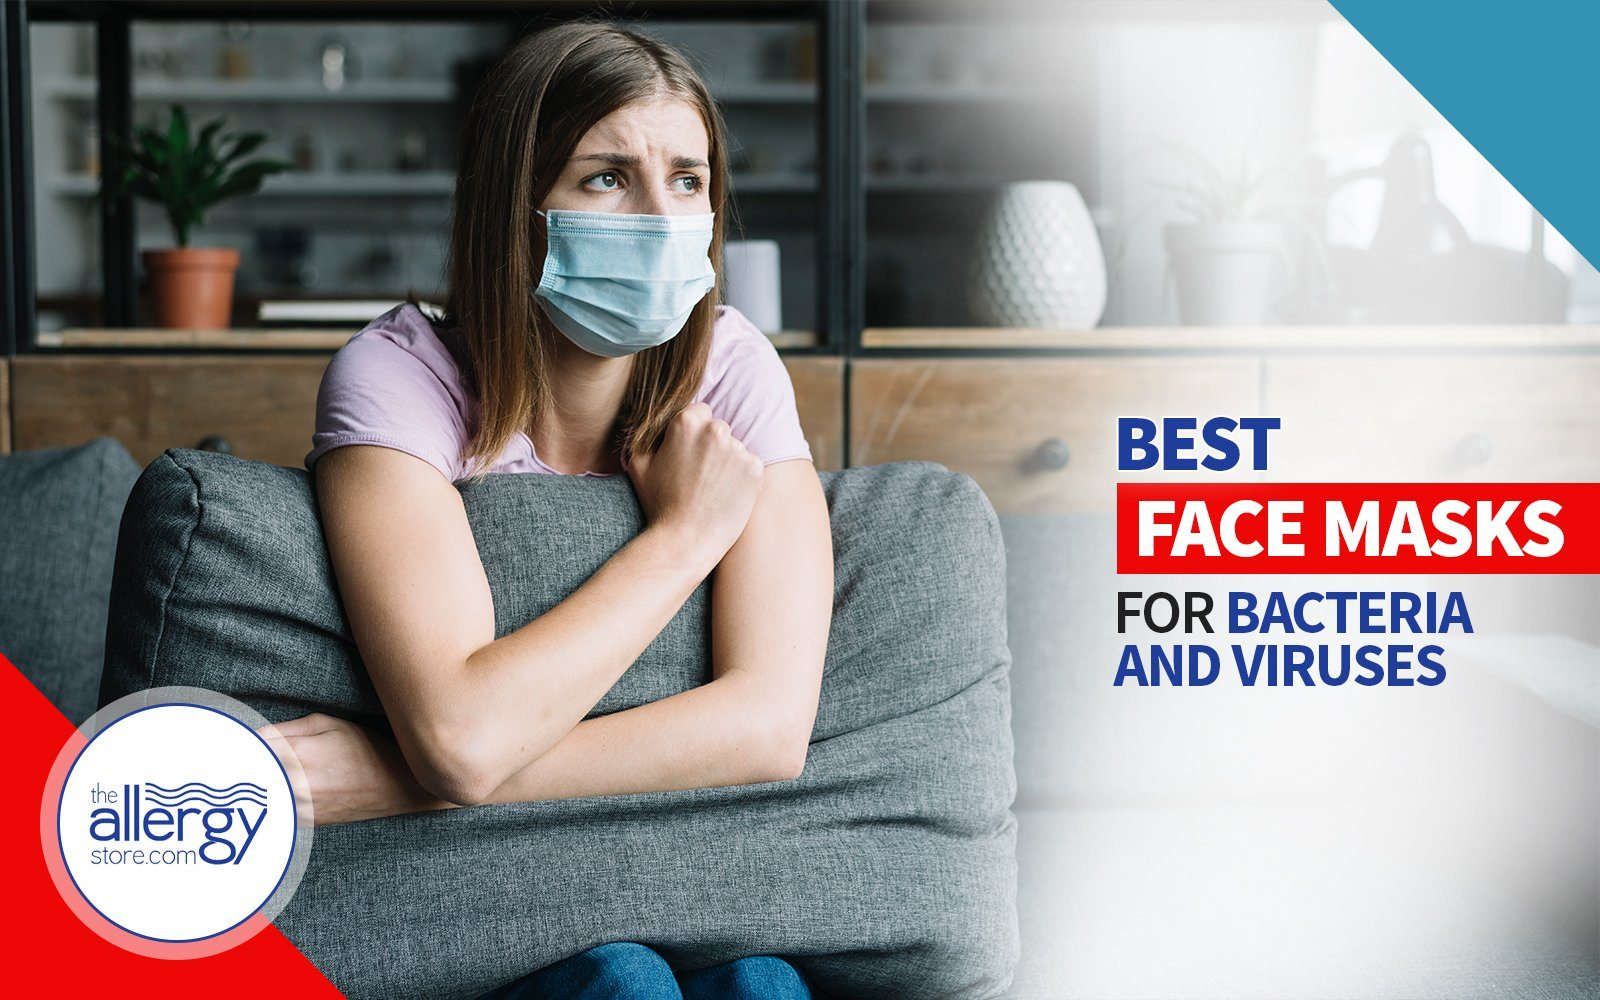 3m masks for germ protection n95 flu